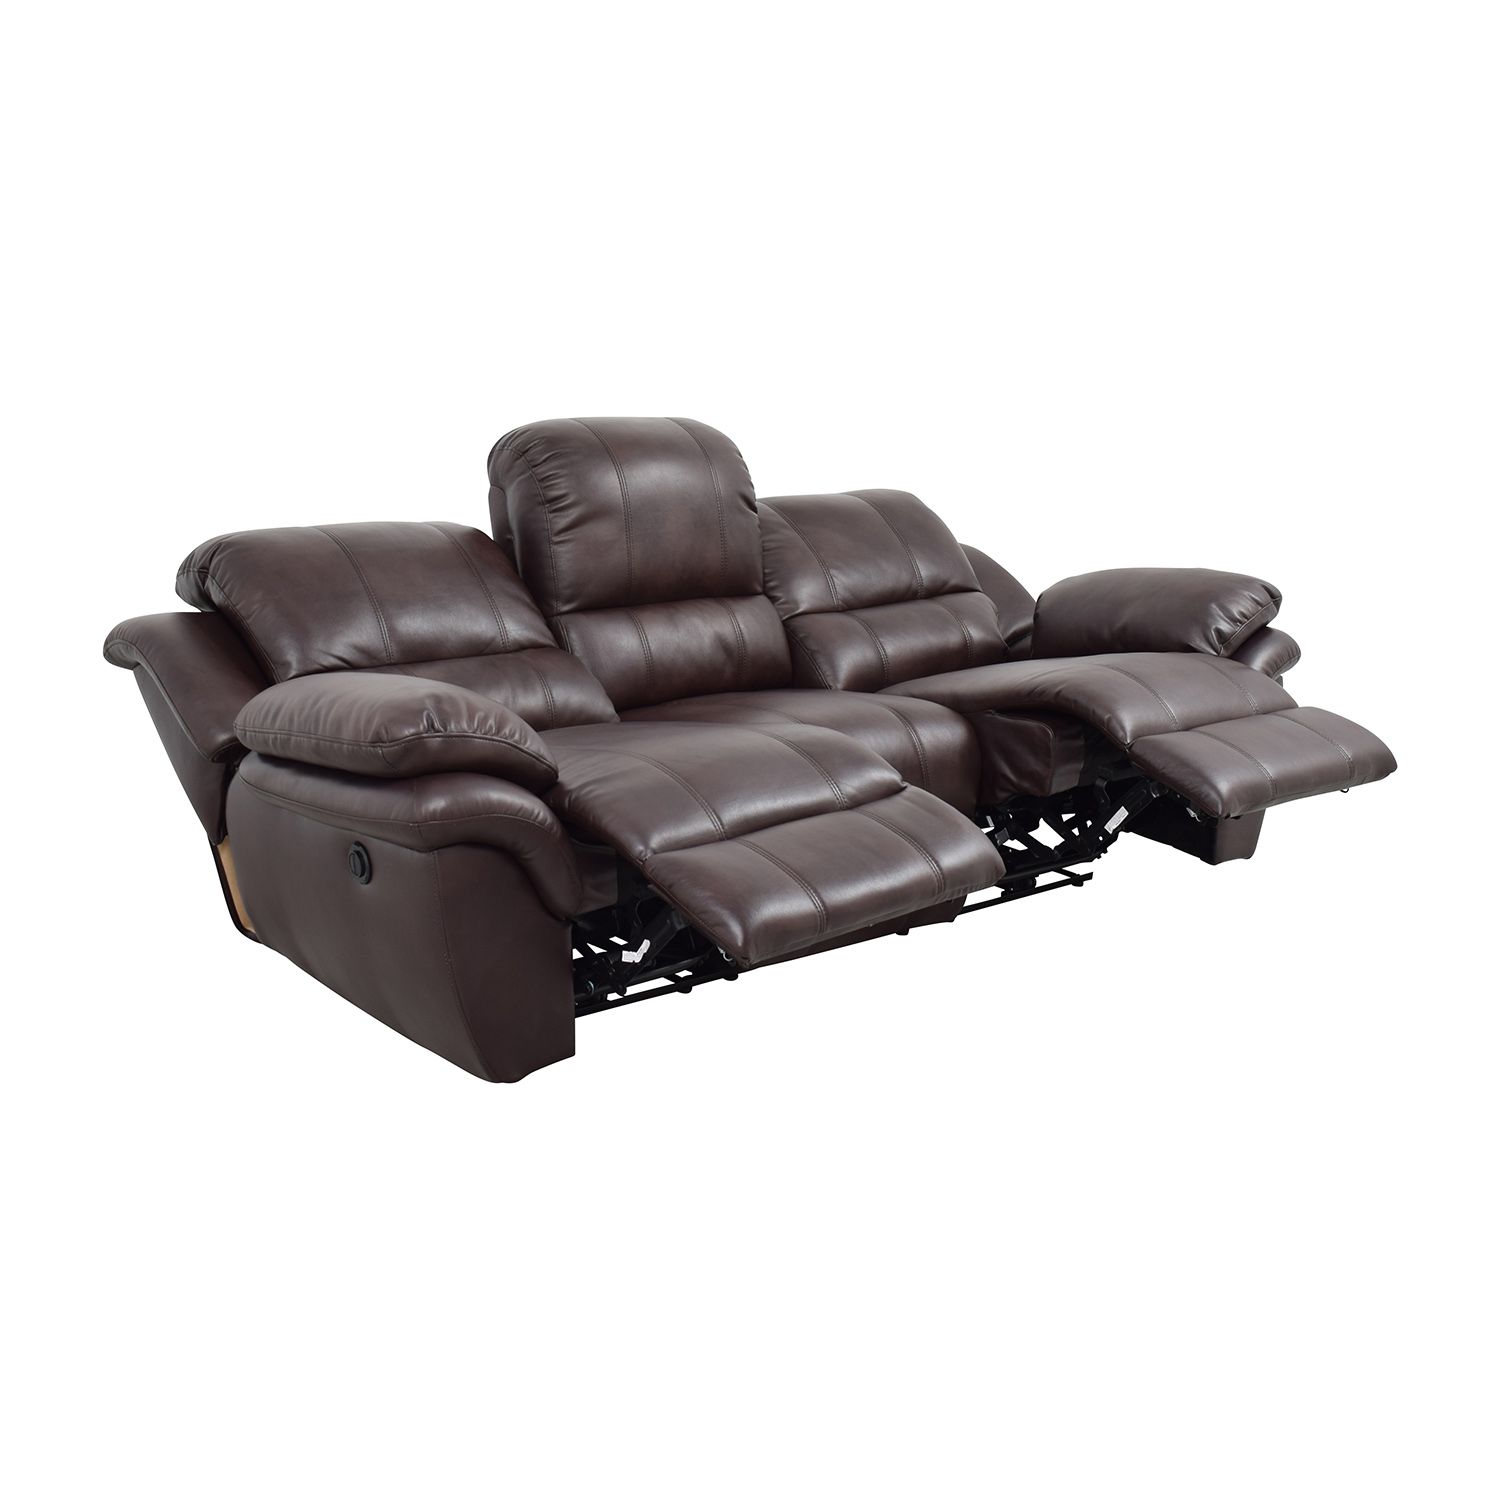 New Classic Home Furnishing New Classic Home Furnishing Leather Reclining Brown Couch on sale